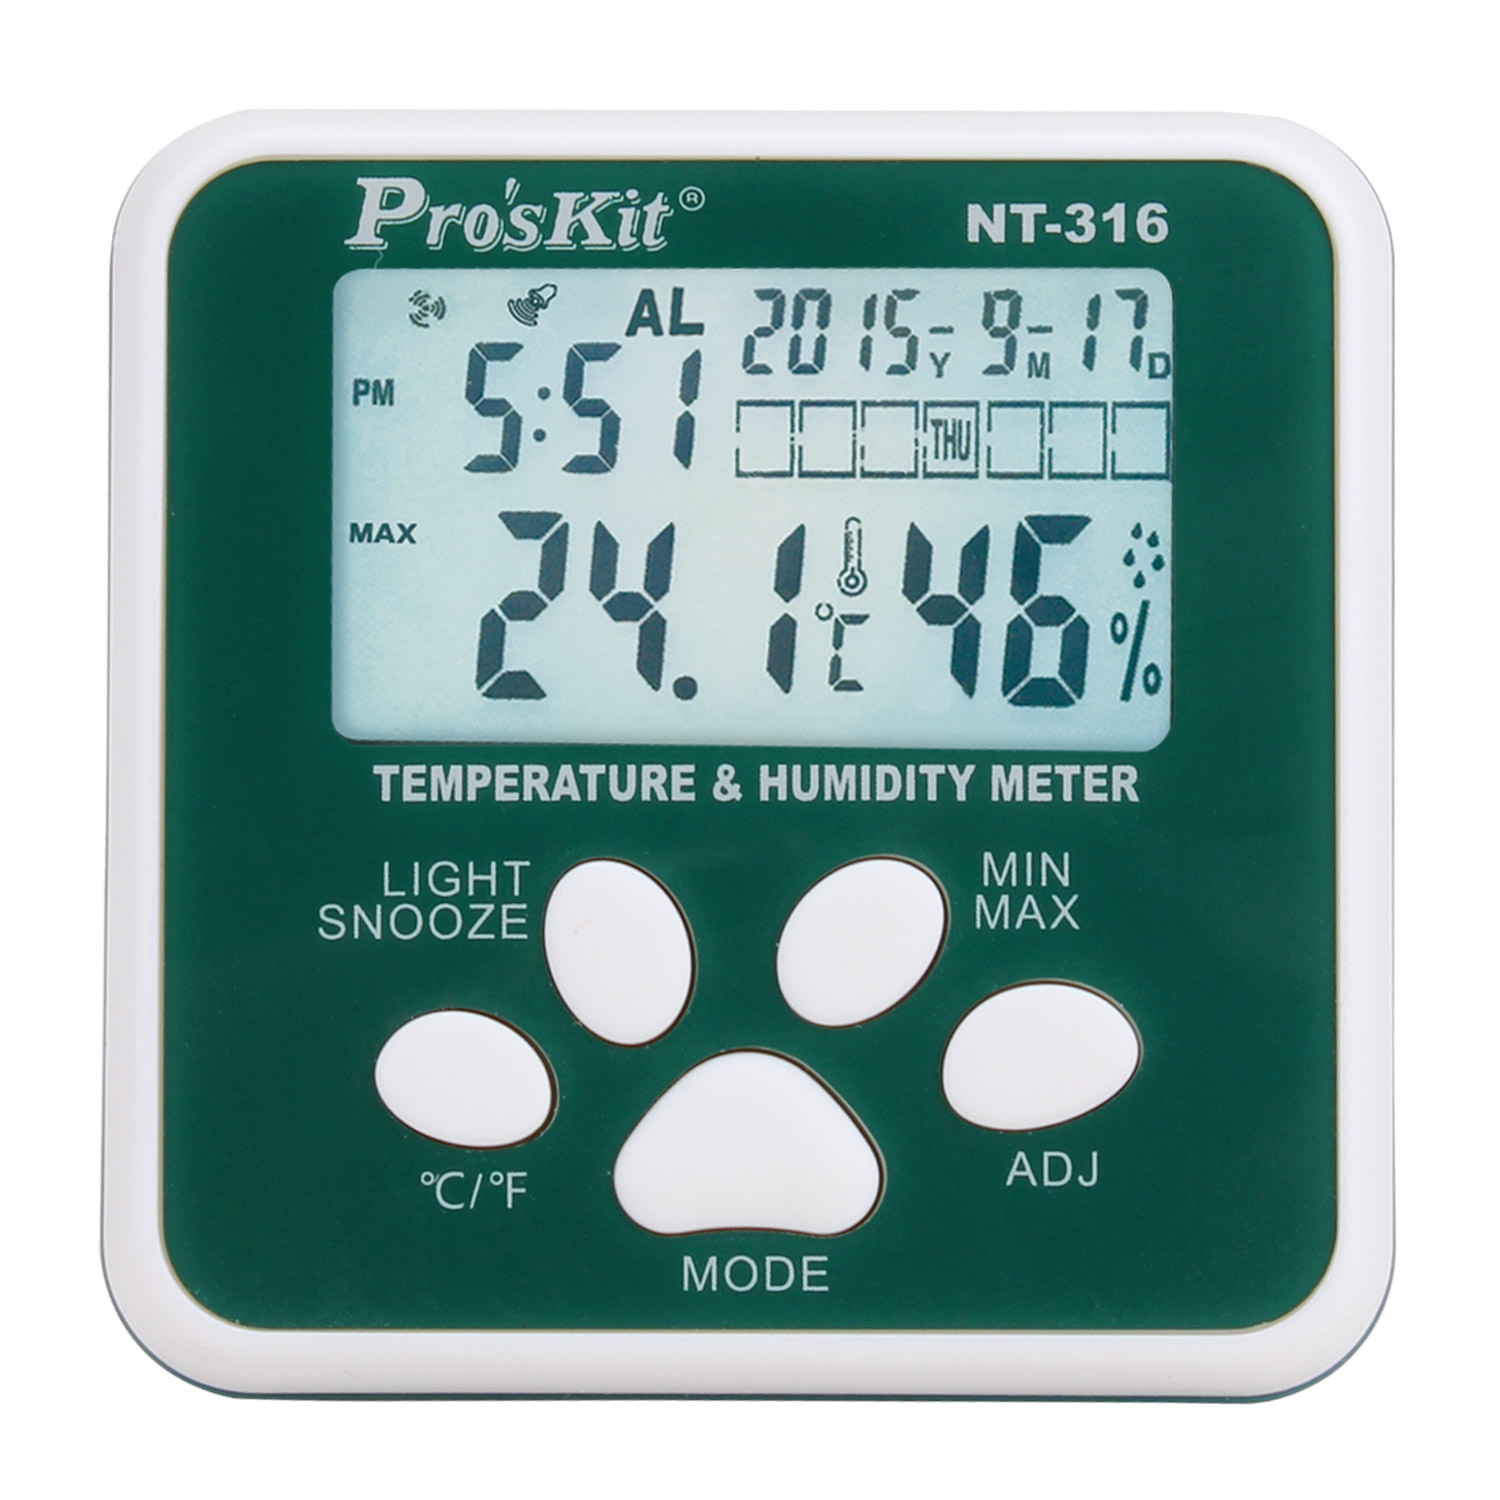 Taiwan po workers pro 'skit NT-316 multifunction temperature and humidity meter thermometer